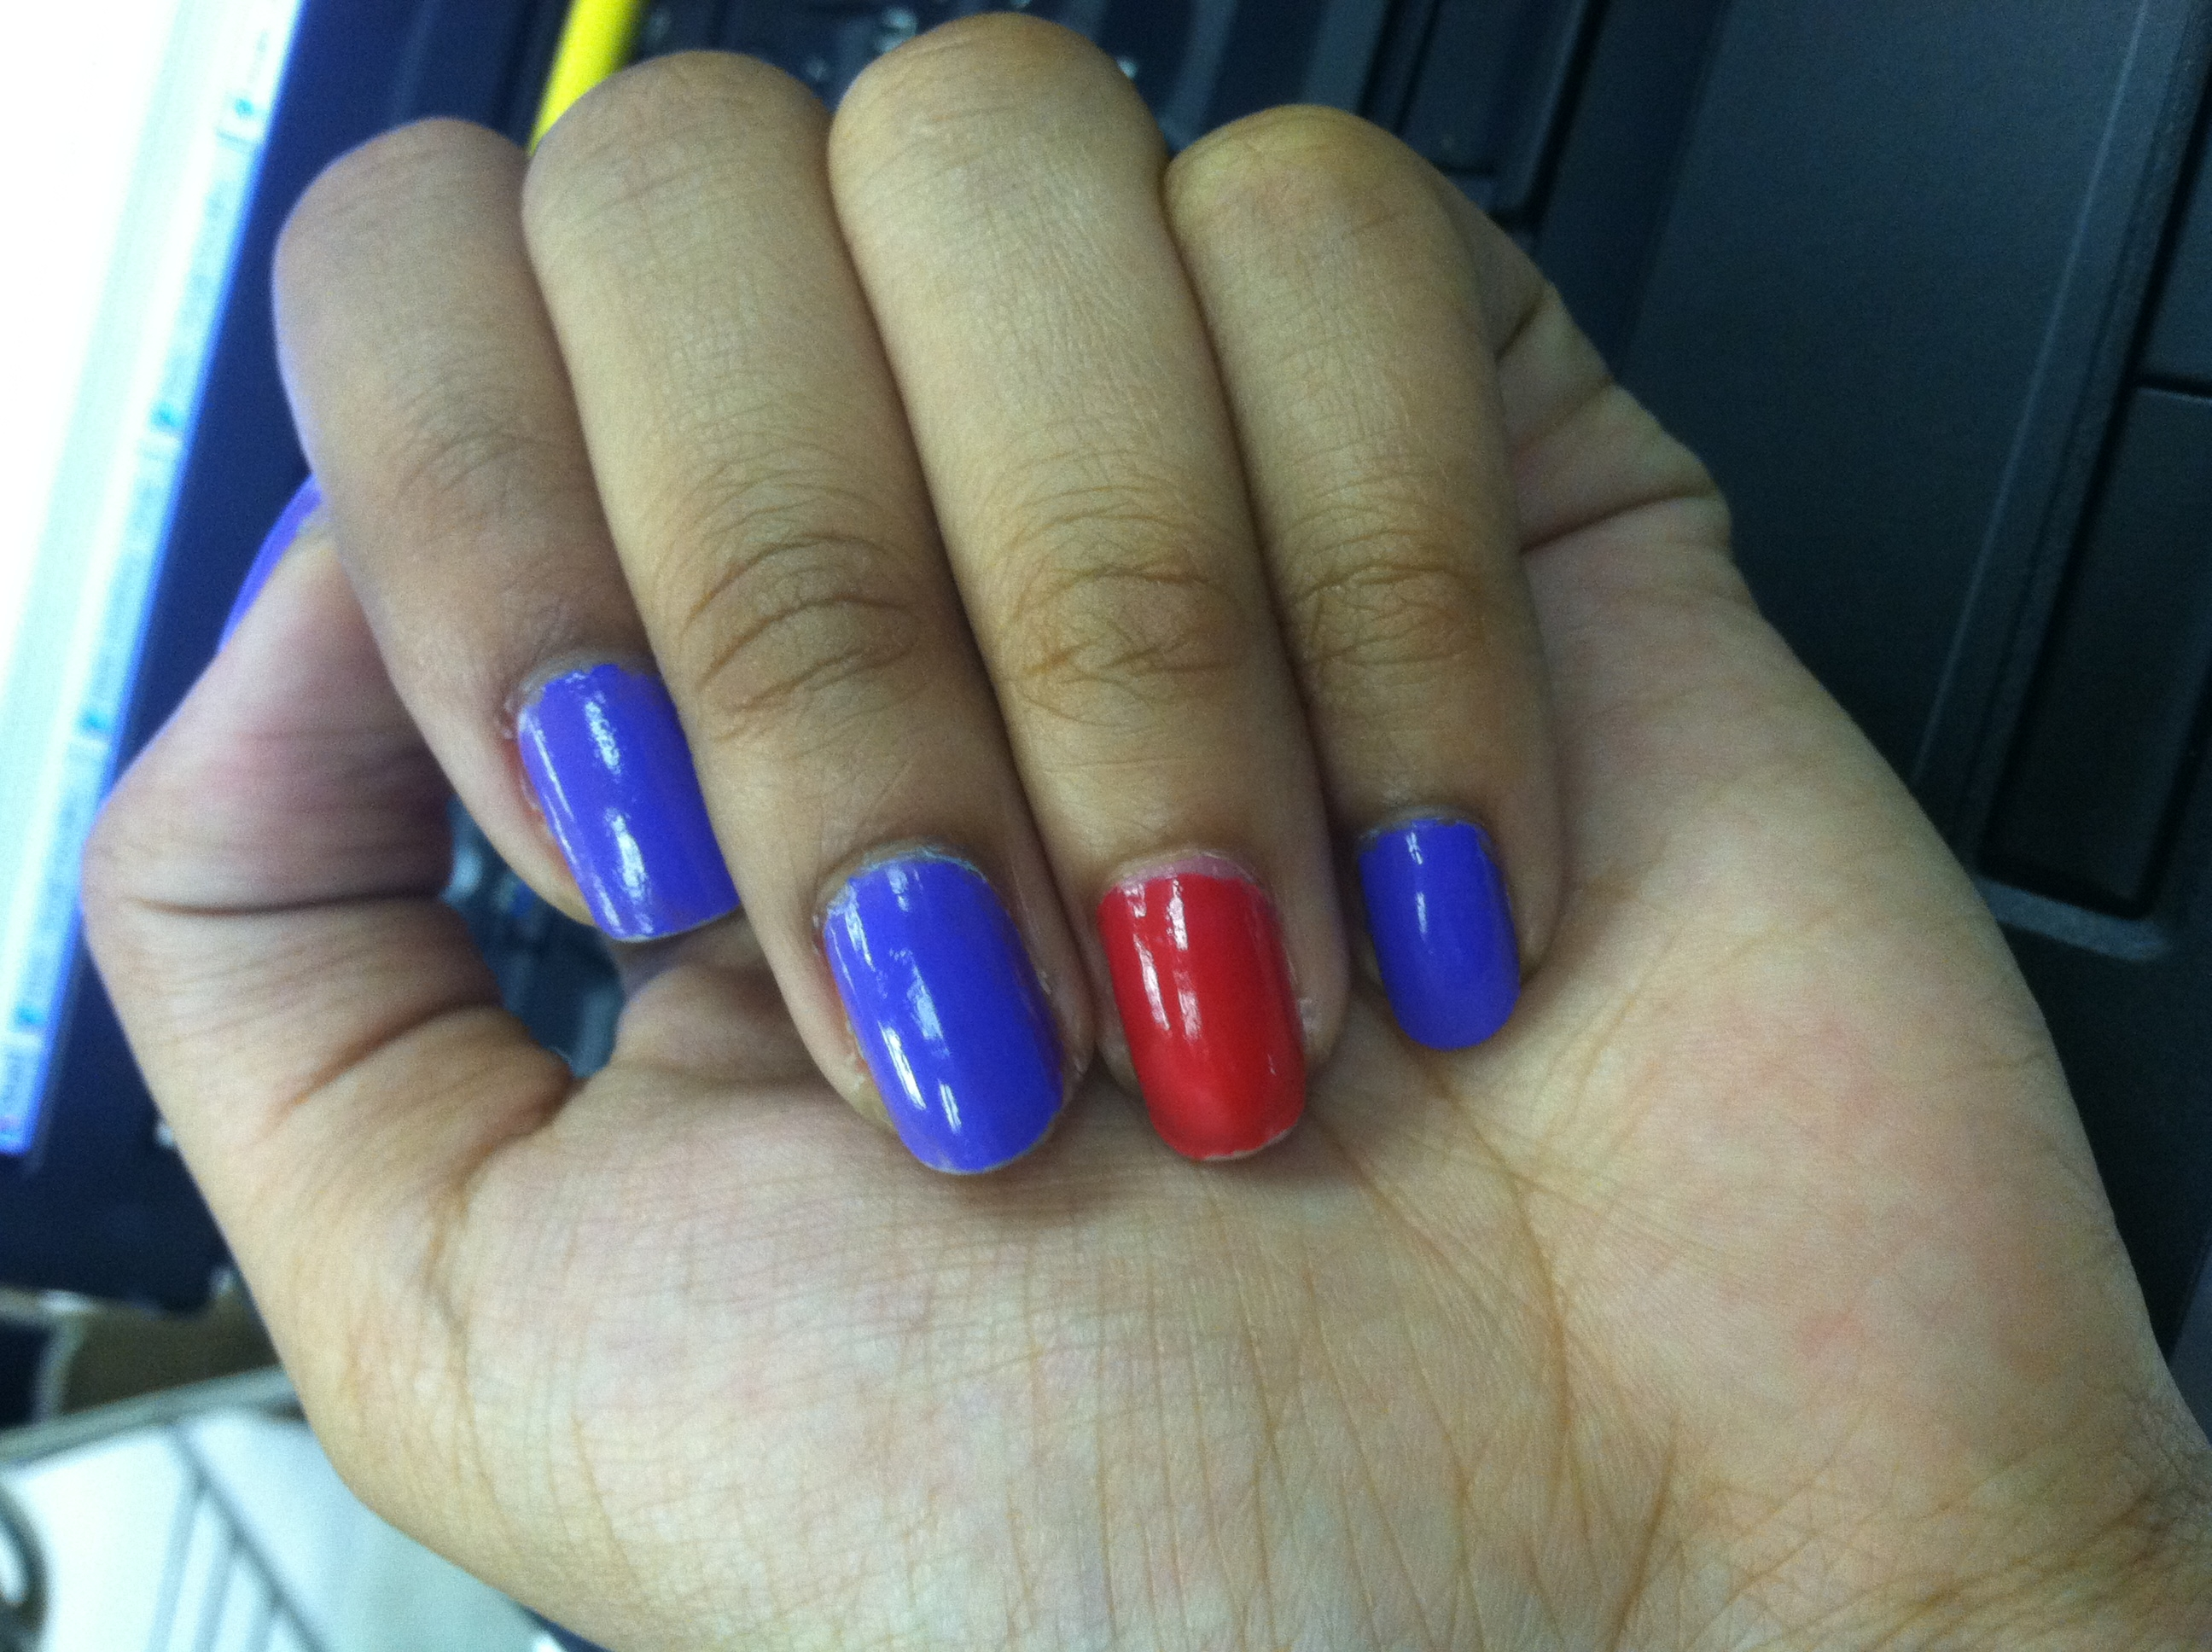 Colorful nails are a sure sign of spring. But when is there too much color?